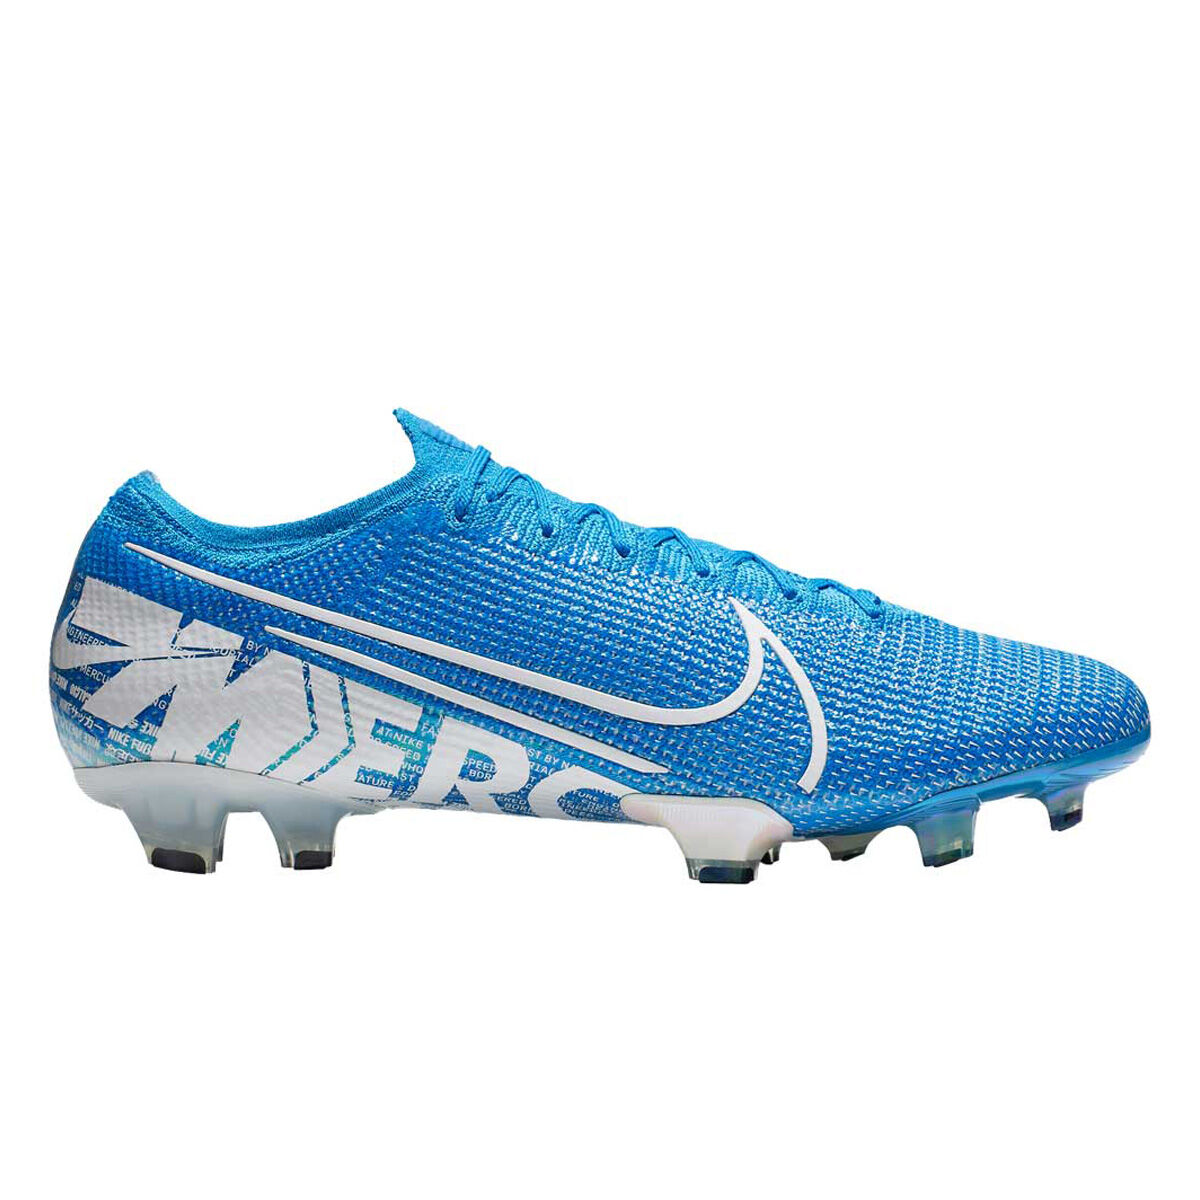 Nike Mercurial Vapor XIII Elite Football Boots